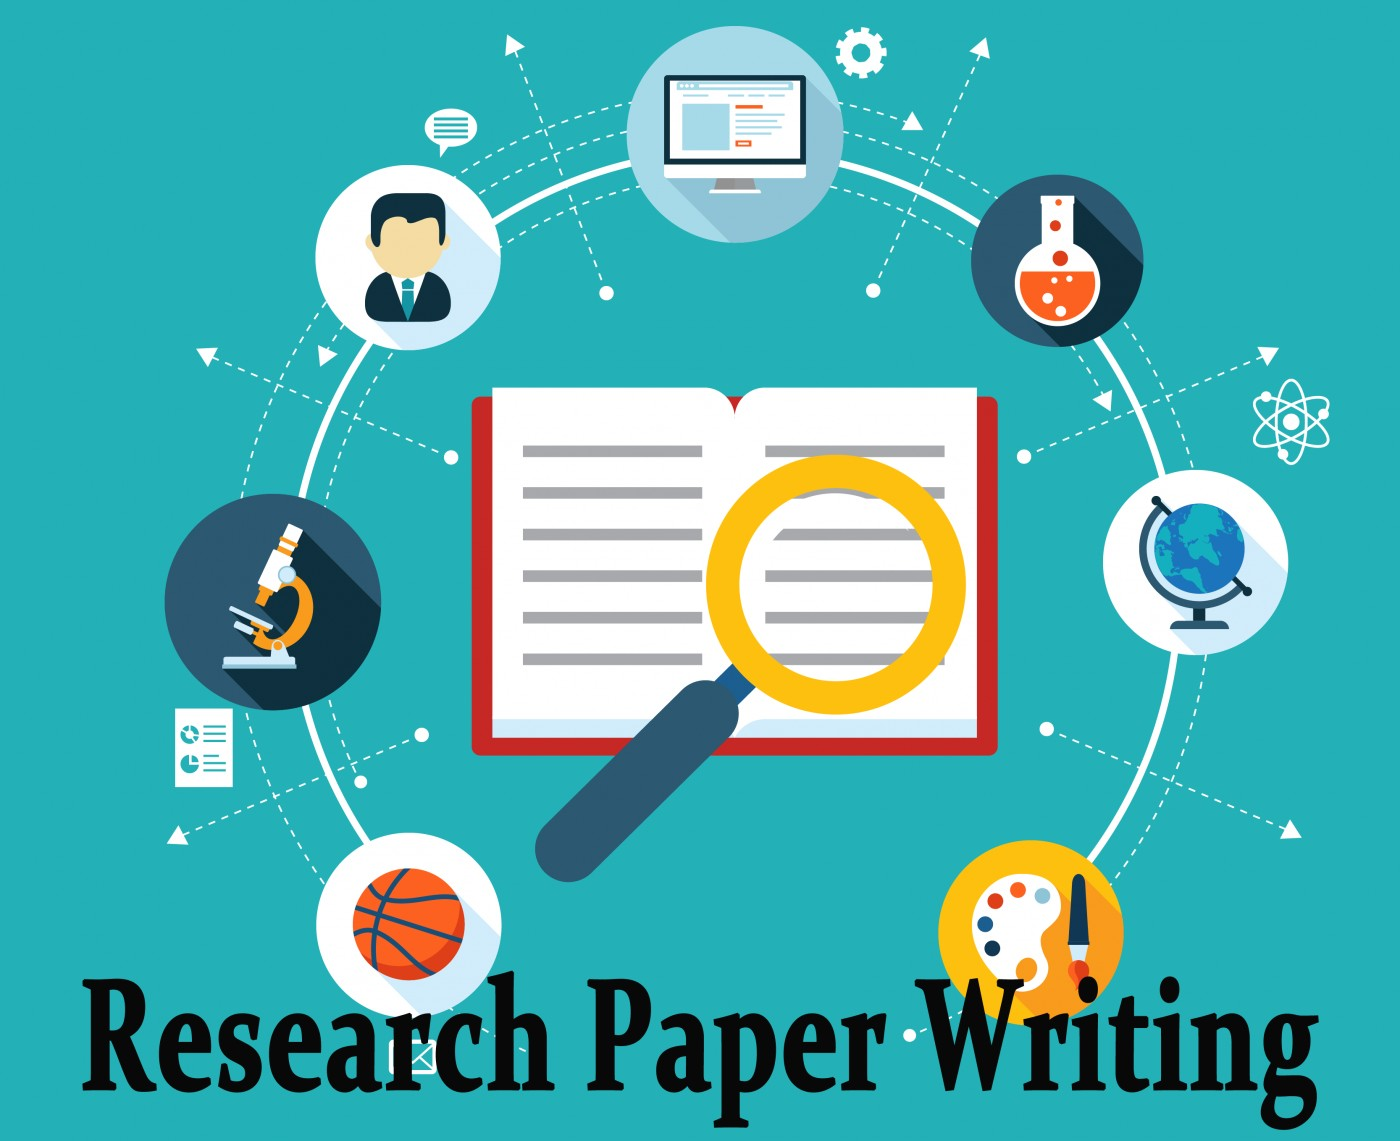 018 503 Effective Research Paper Writing Unique Papers A Complete Guide Pdf Download James D Lester 1400